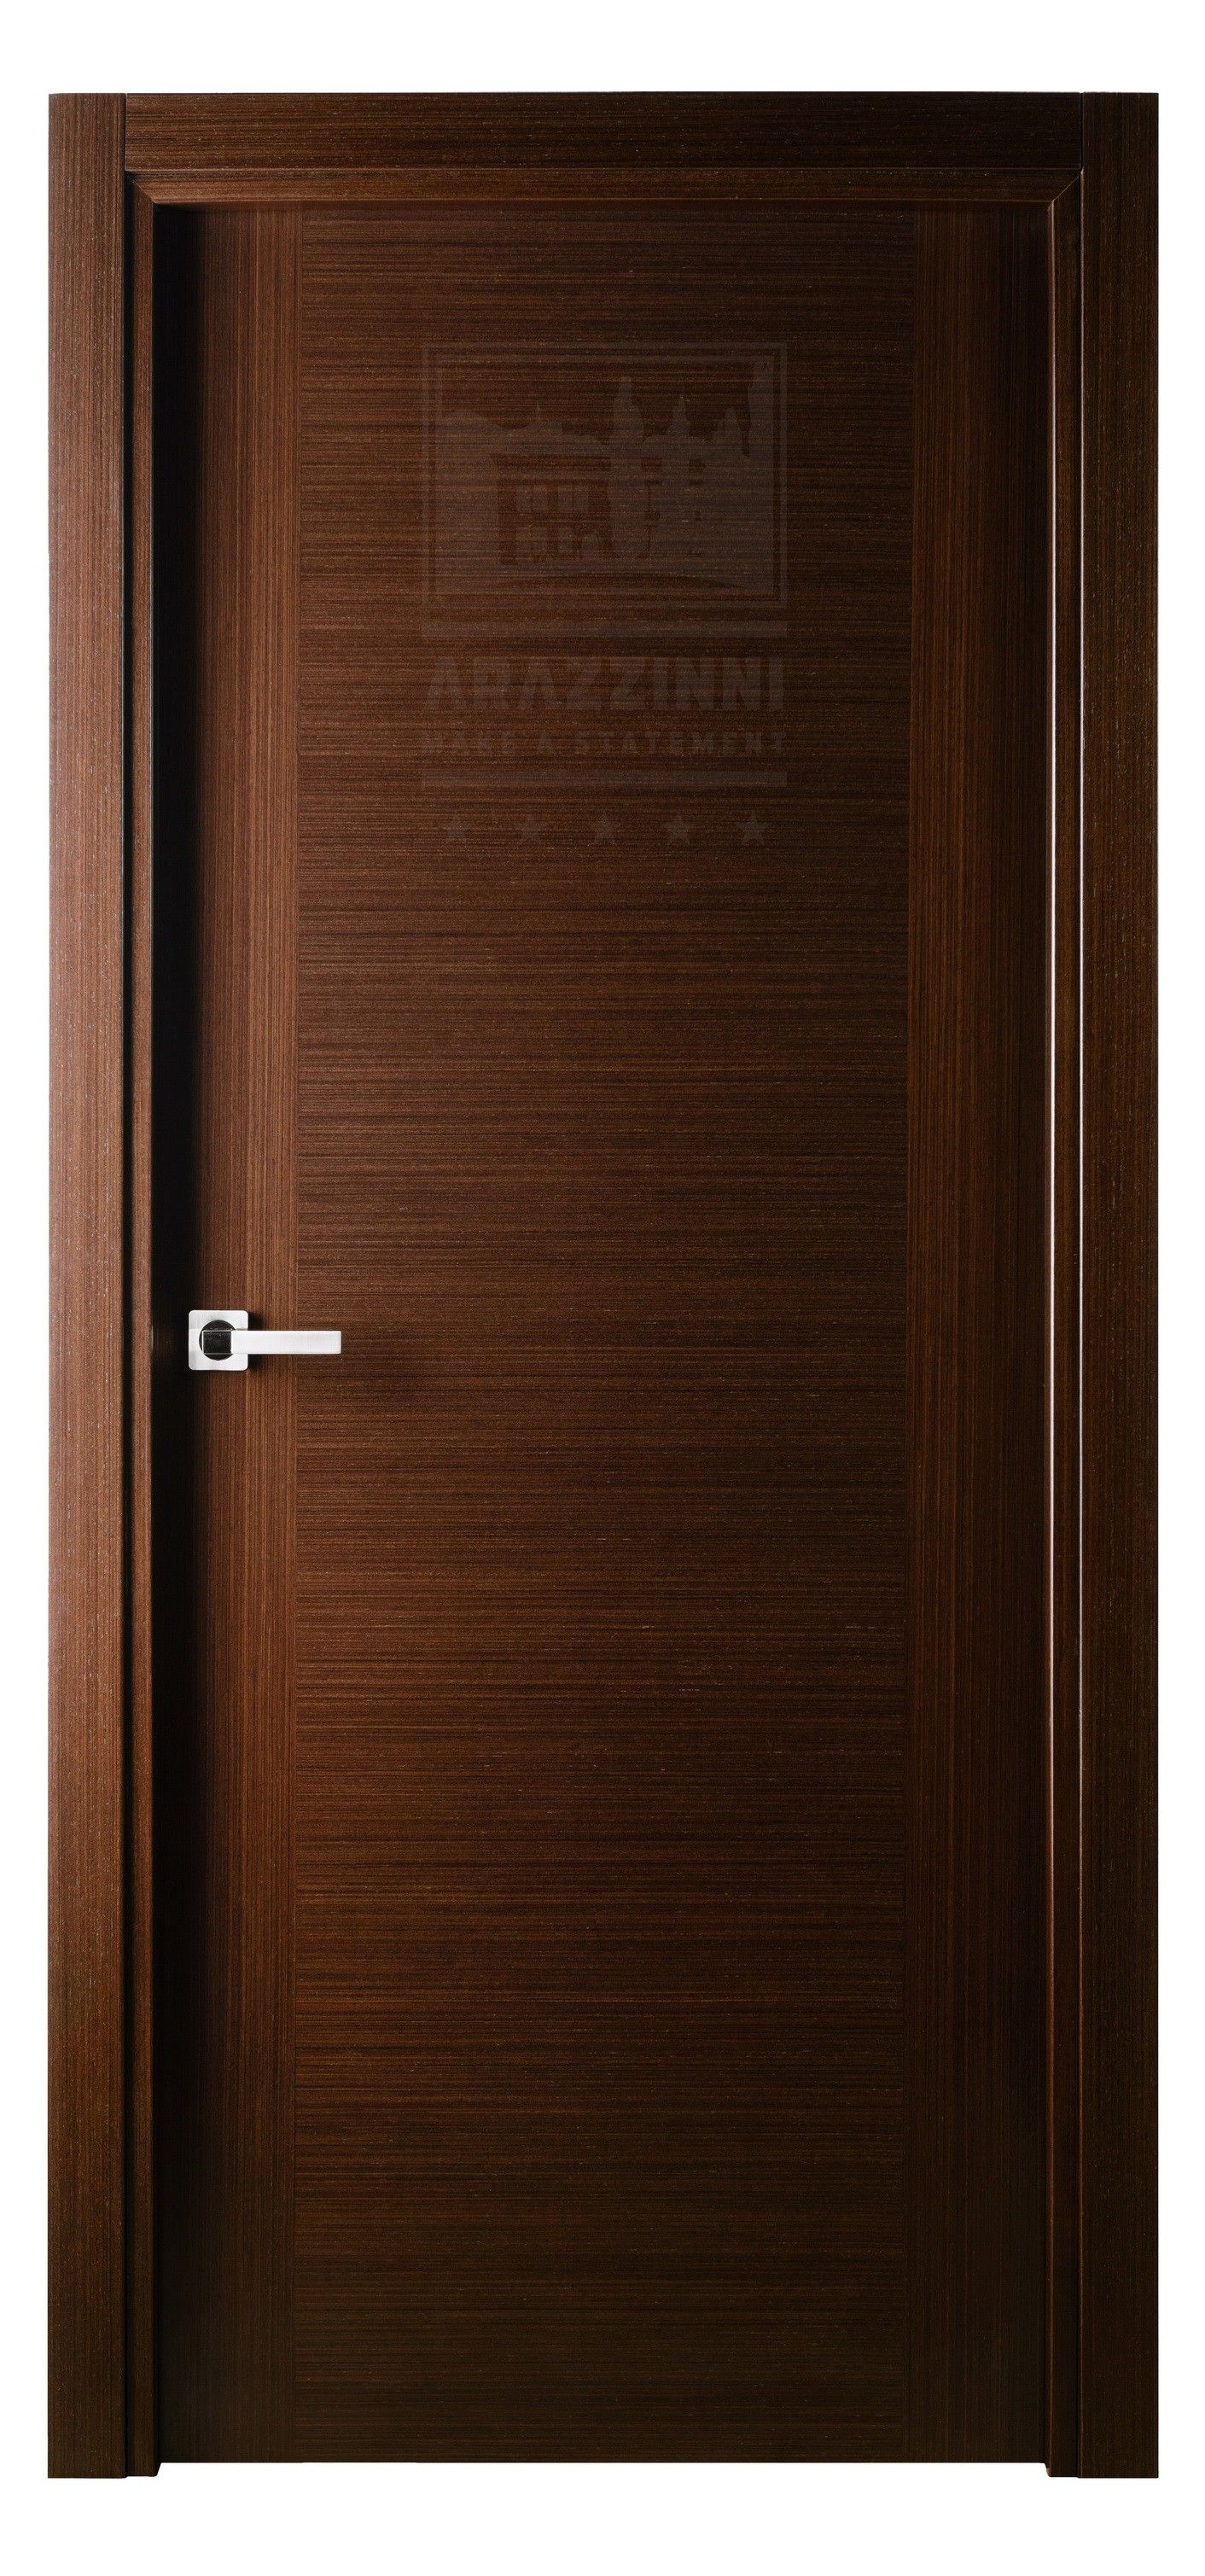 Versai vetro interior door in italian wenge finish exotic wood versai vetro interior door in italian wenge finish eventelaan Gallery